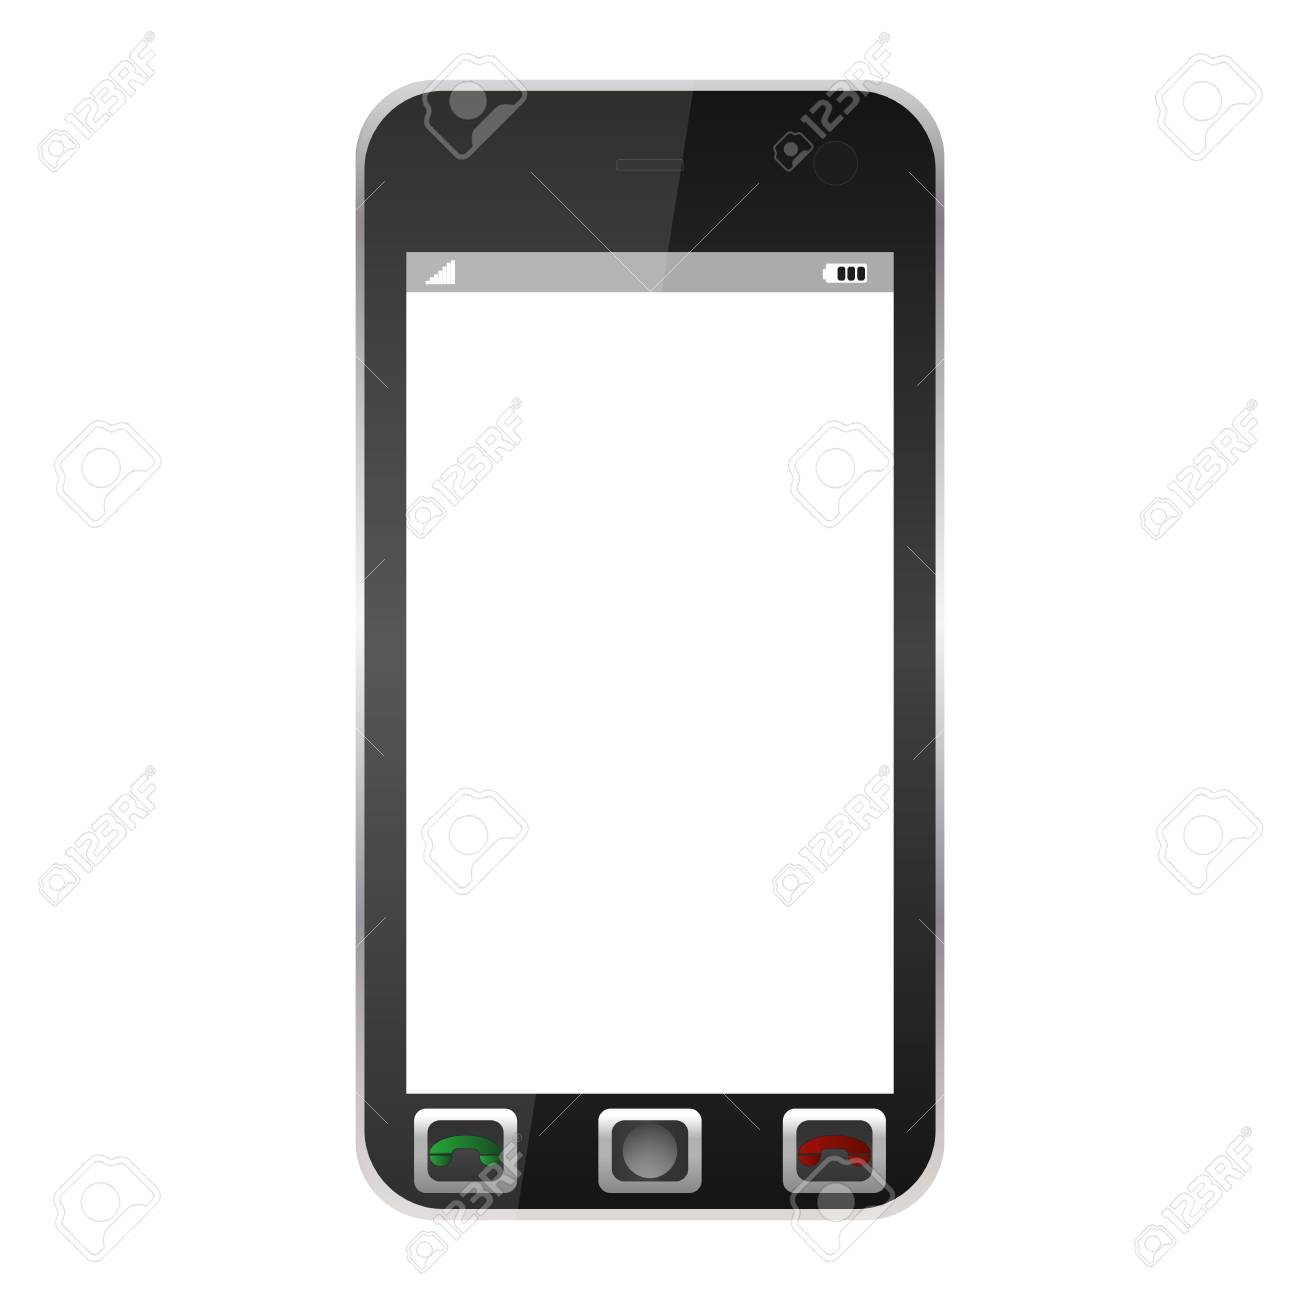 mobile phone Stock Vector - 16672172